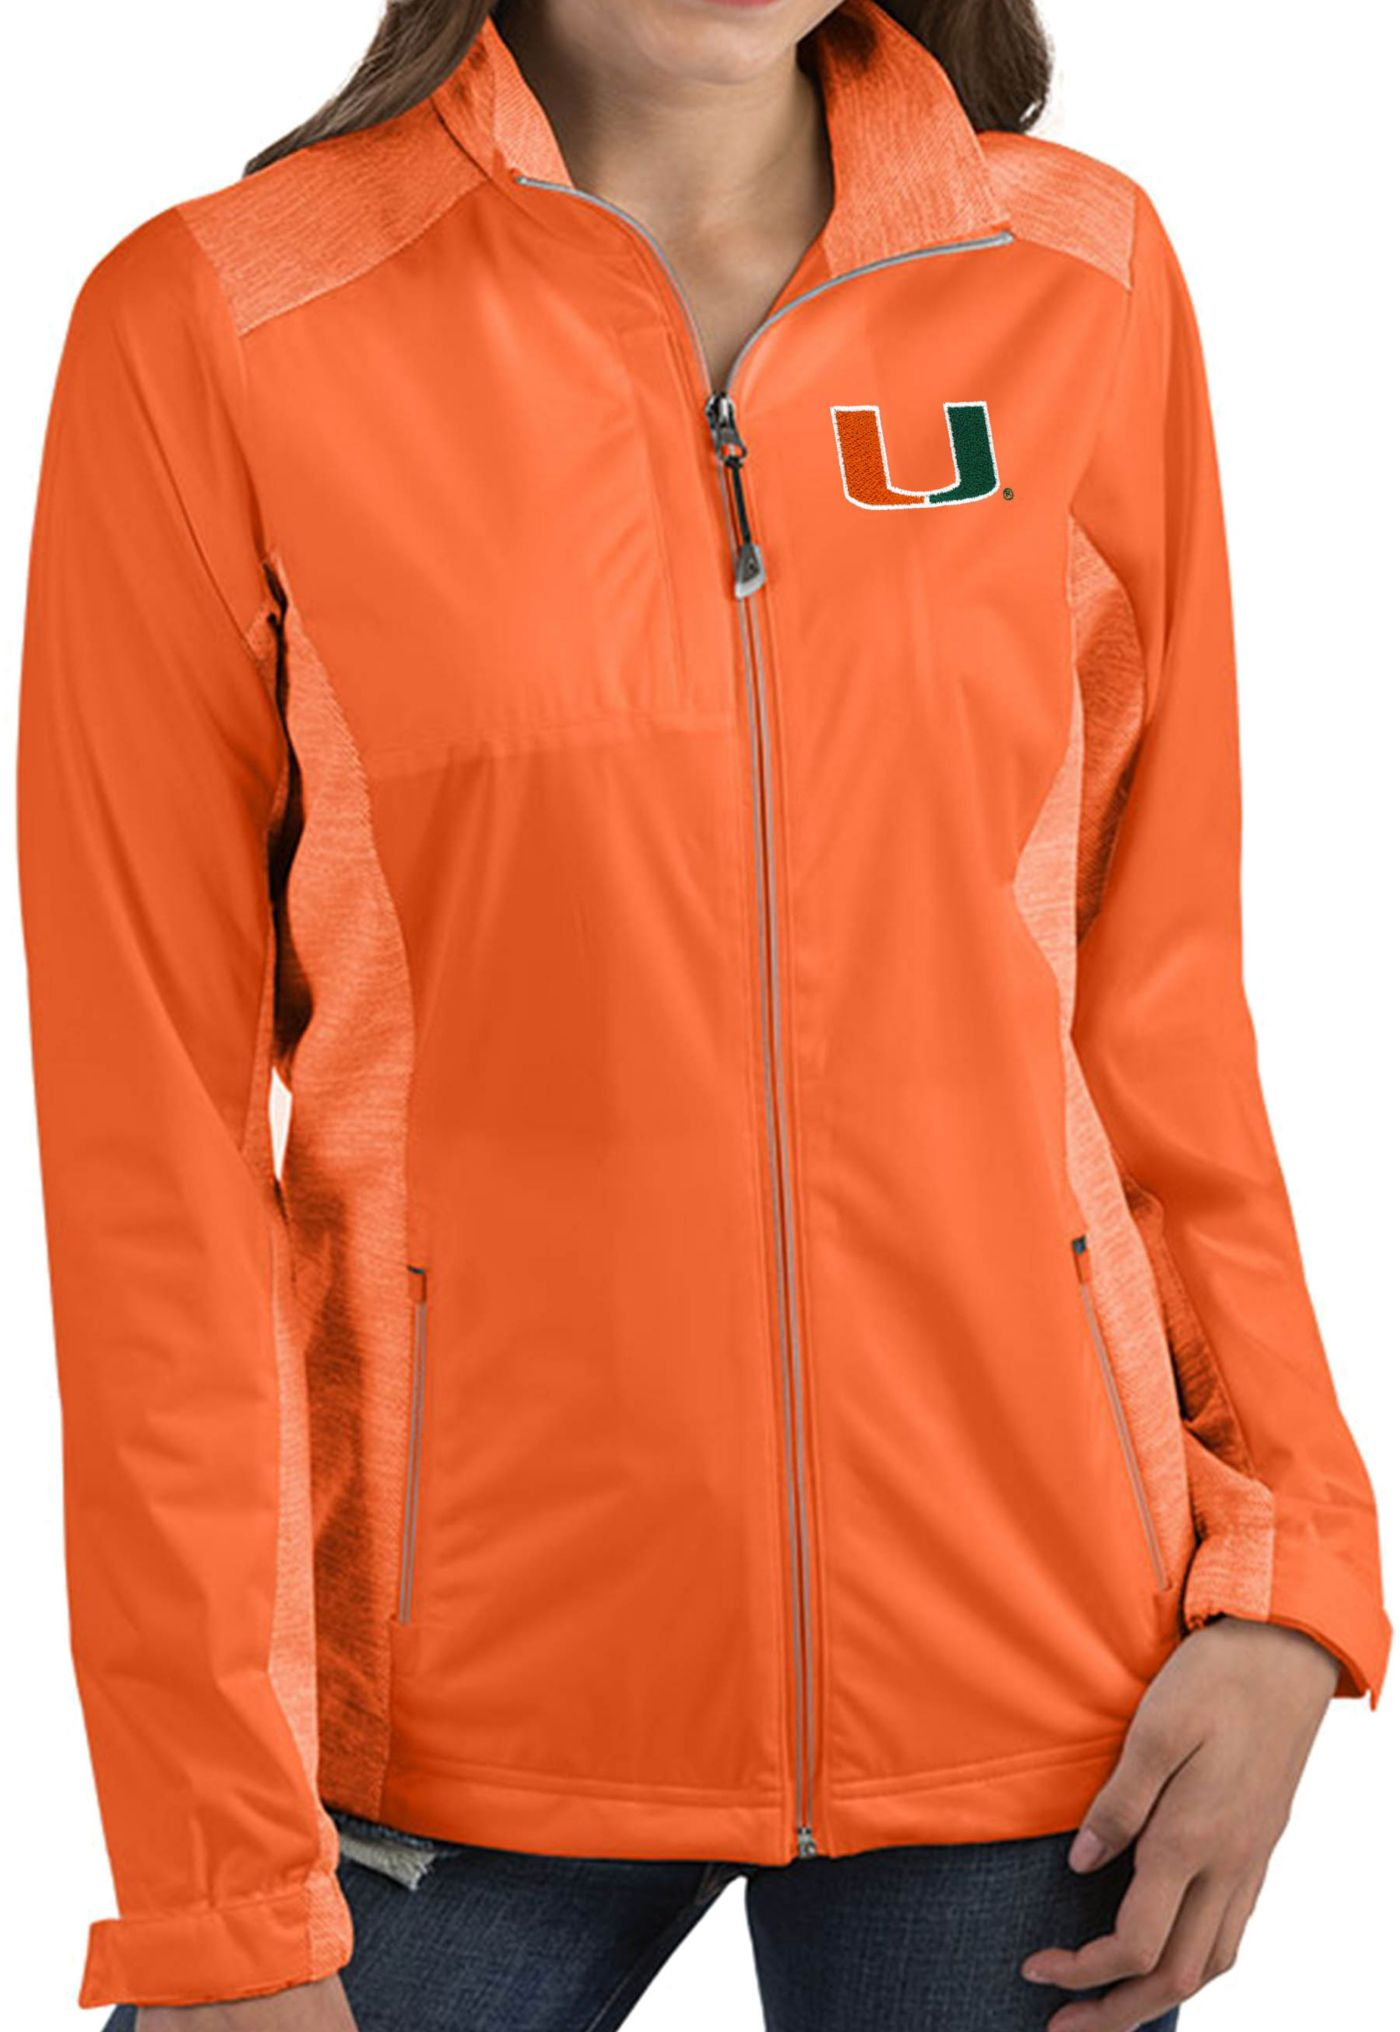 Antigua Women's Miami Hurricanes Orange Revolve Full-Zip Jacket